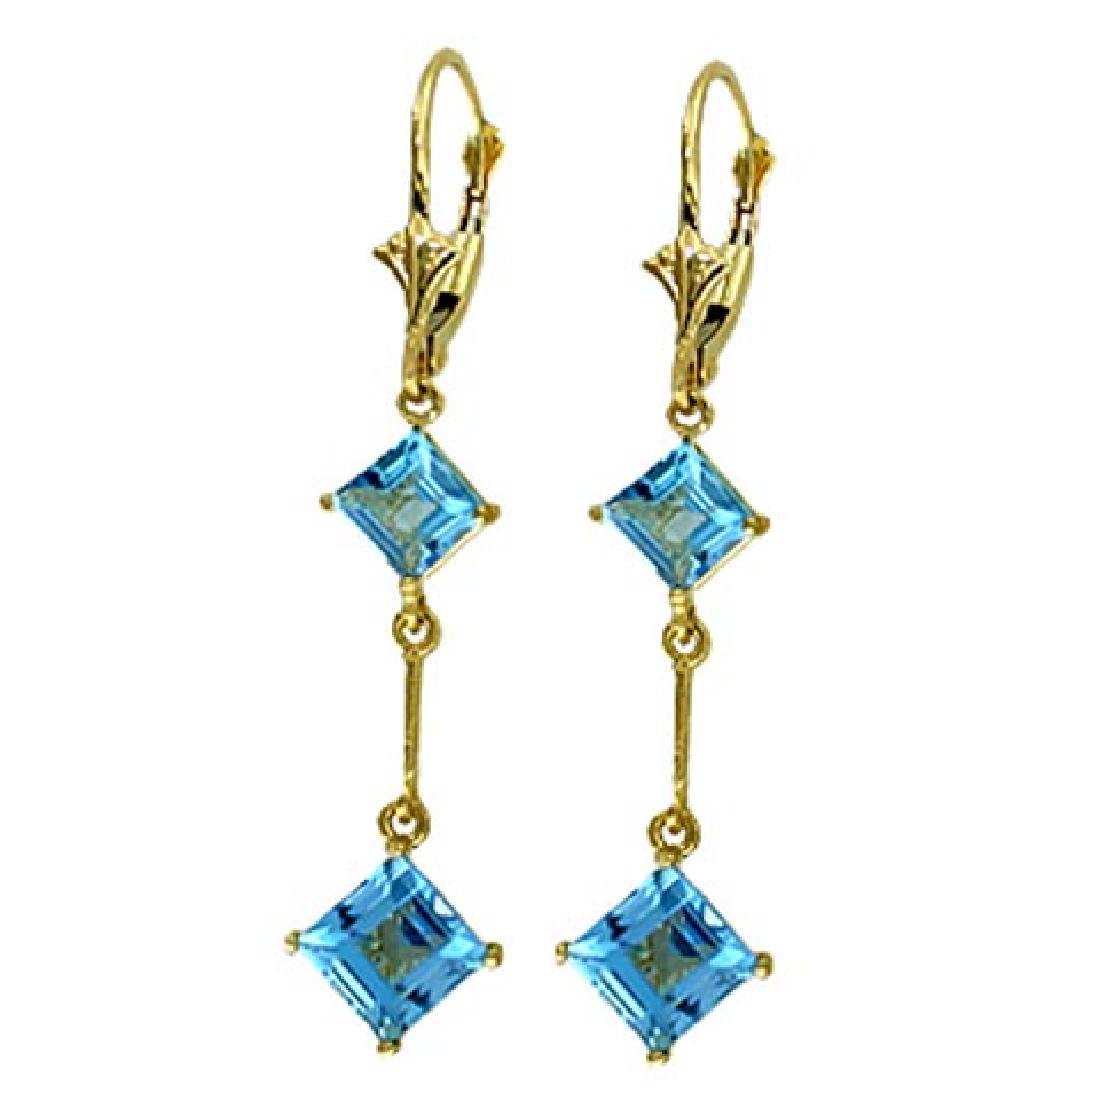 14K Solid White Gold Leverback Earrings with Blue Topaz - 2